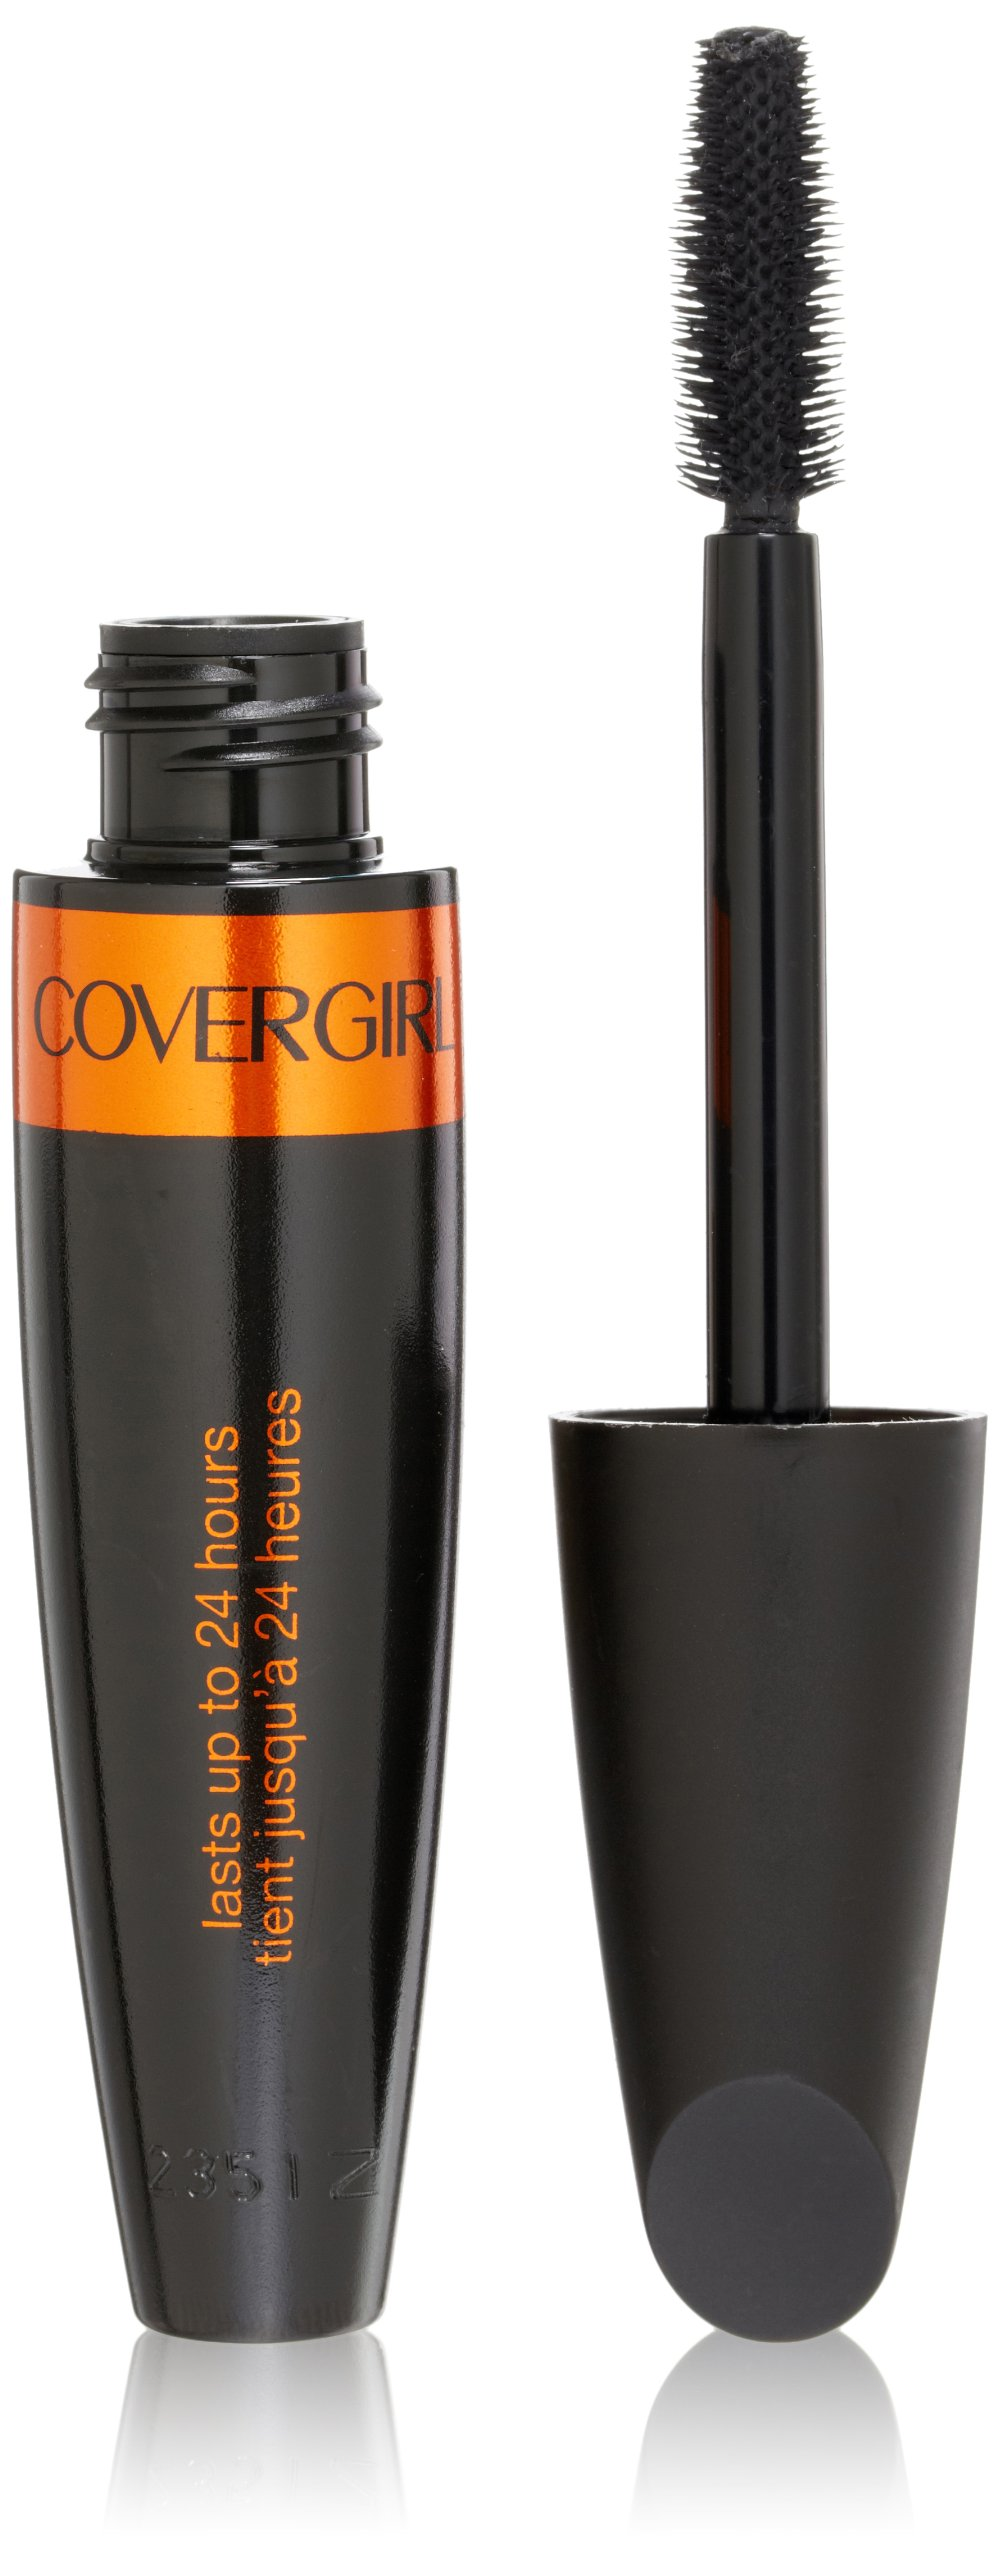 COVERGIRL Lashblast 24 Hour Mascara, Black 805, 0.44 Fluid Ounce